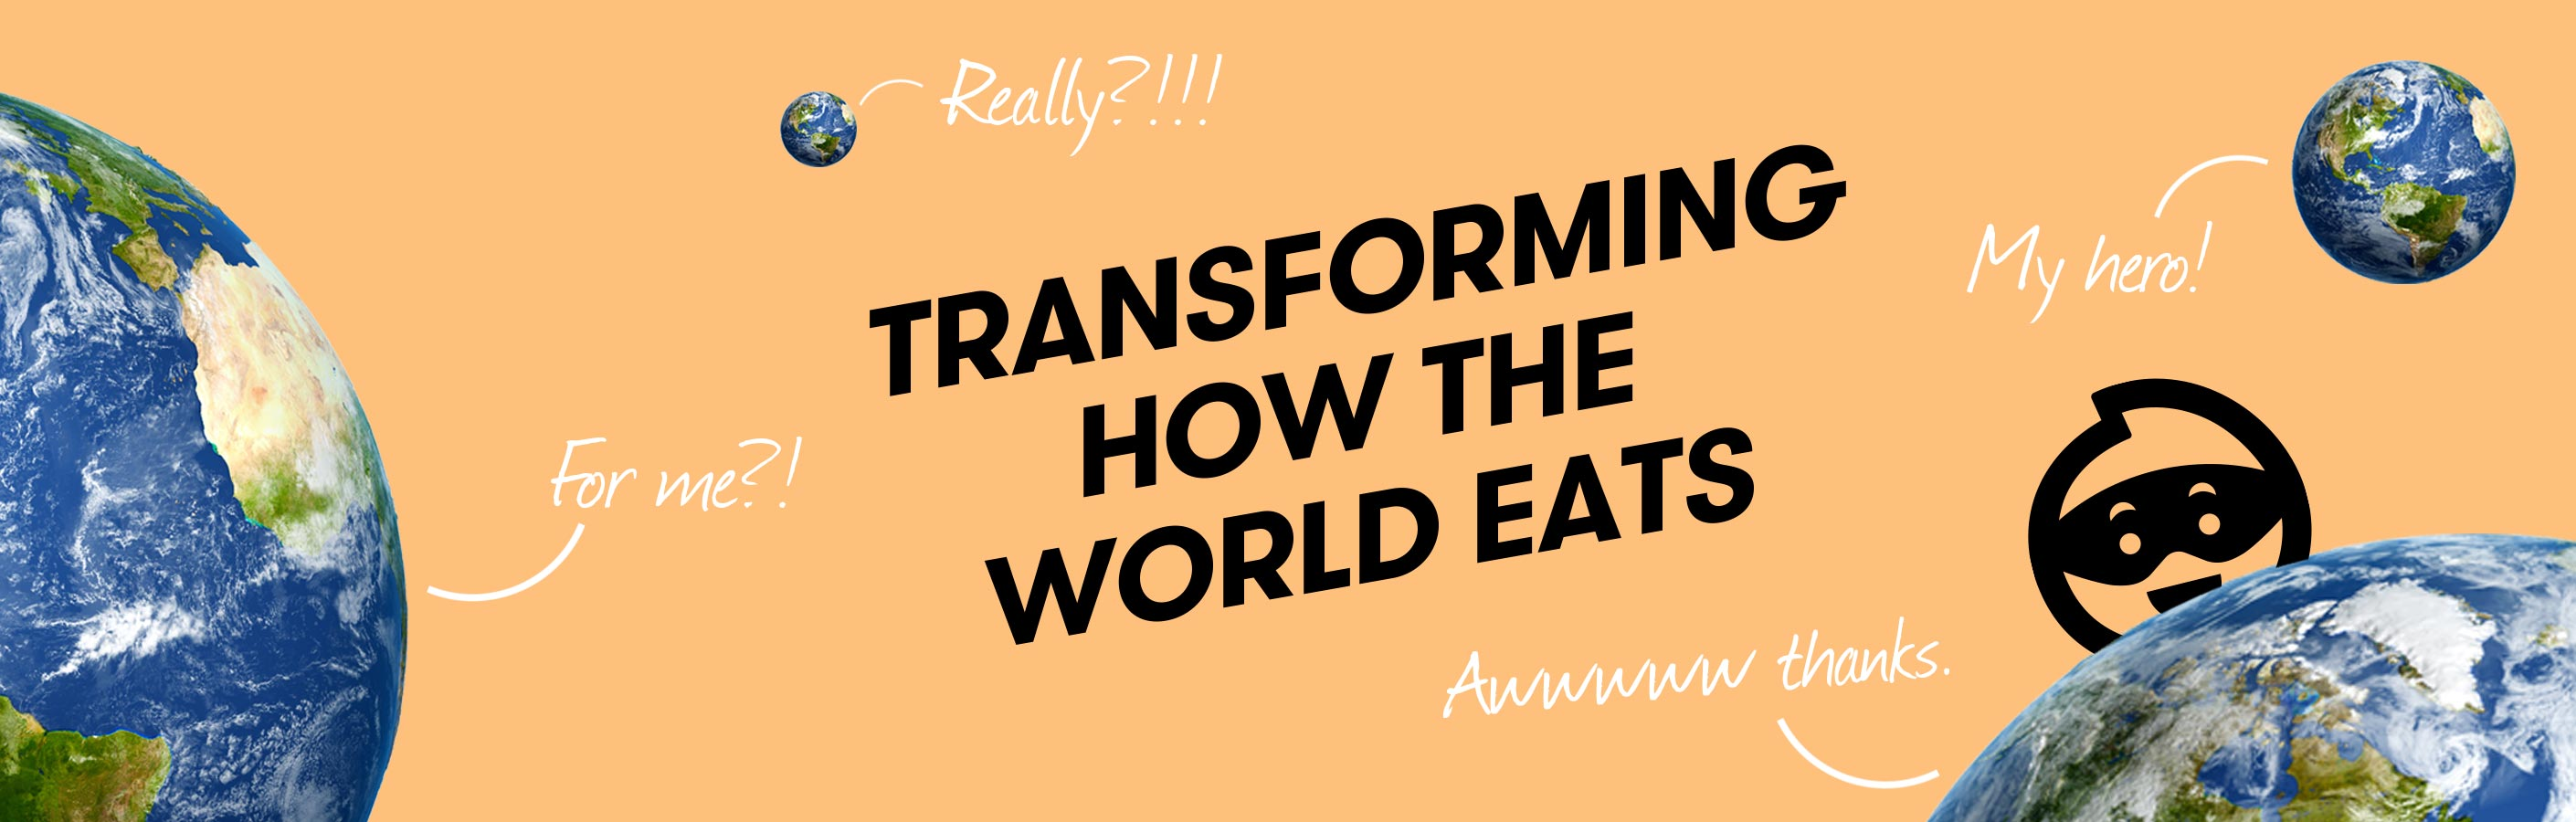 Transforming how the world eats